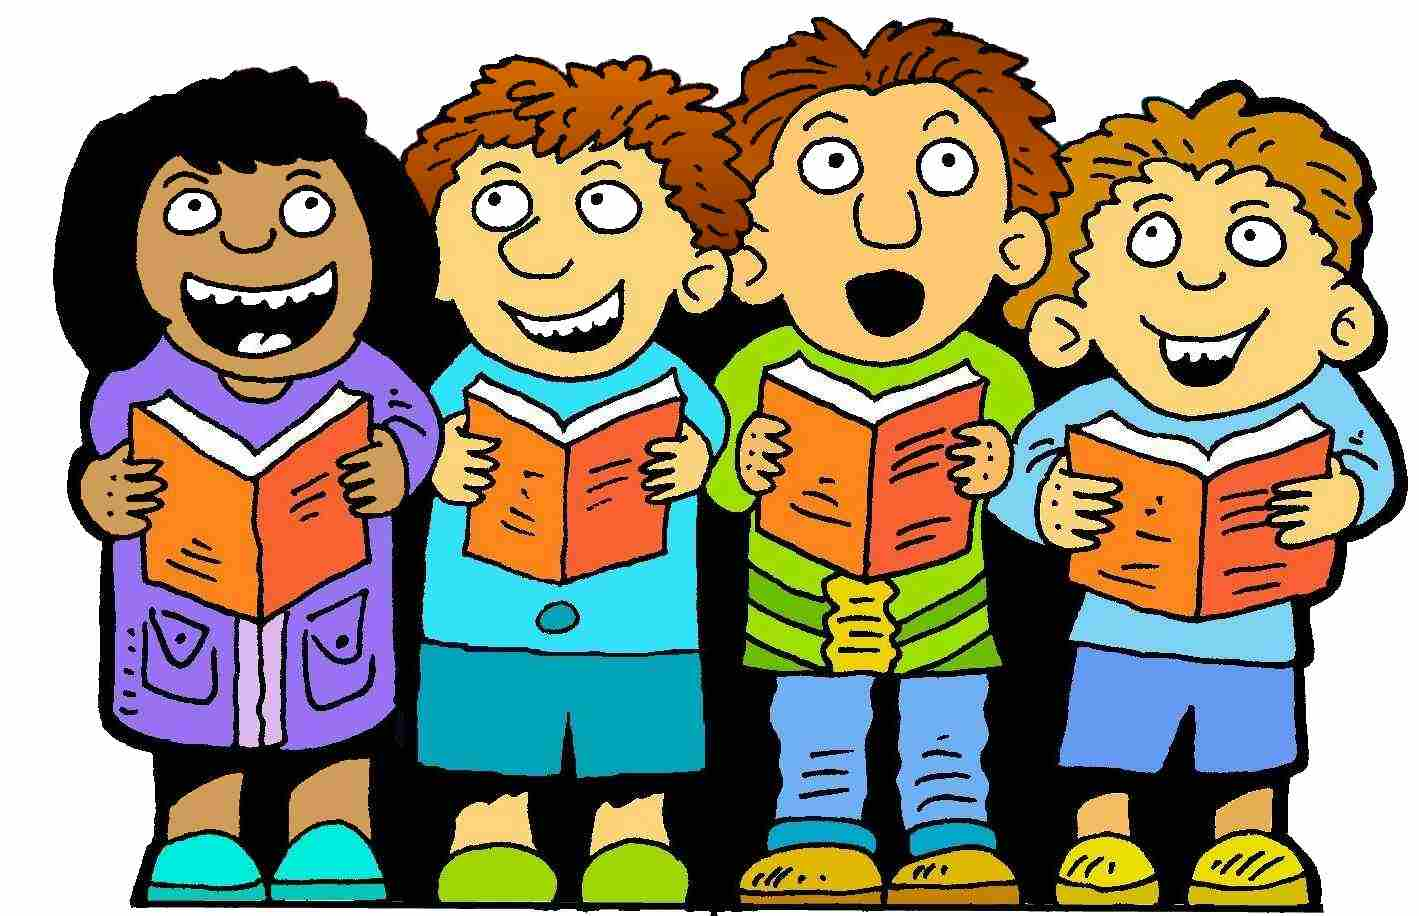 Choir scholars clipart image freeuse Collection of Choral clipart | Free download best Choral clipart on ... image freeuse